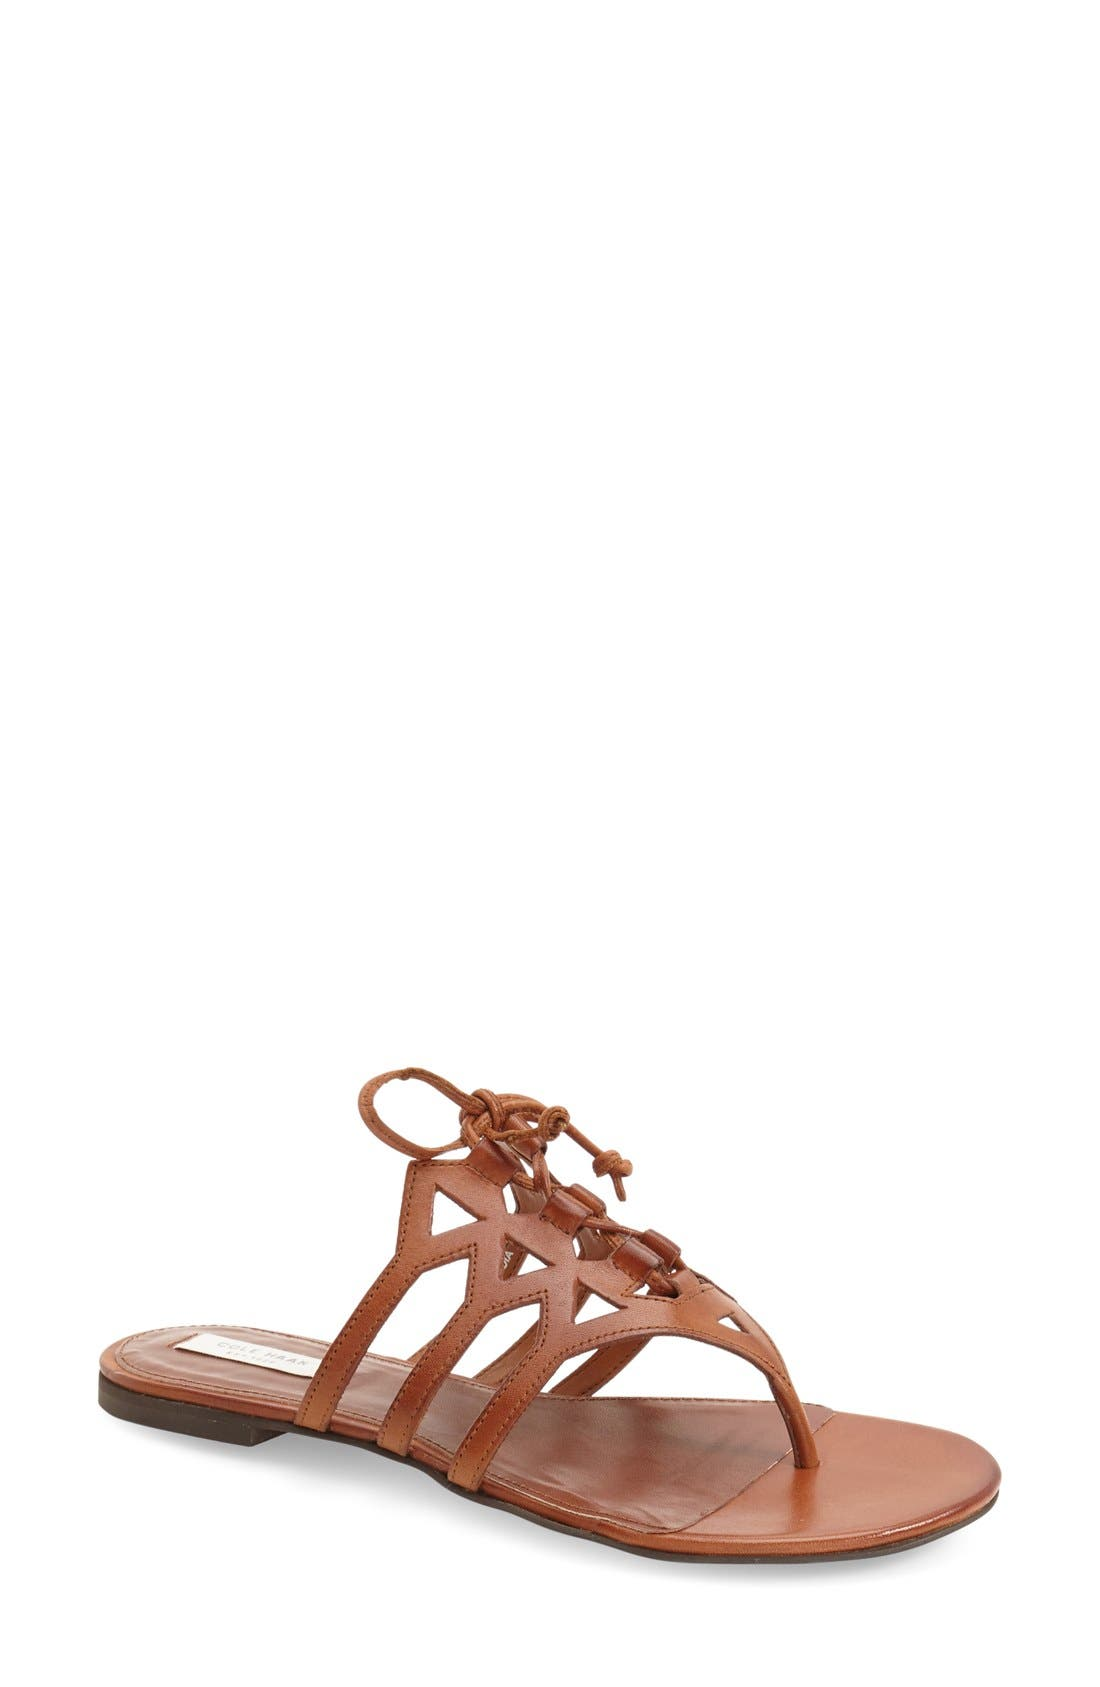 Main Image - Cole Haan 'Claudia' Flat Lace-Up Sandal (Women)